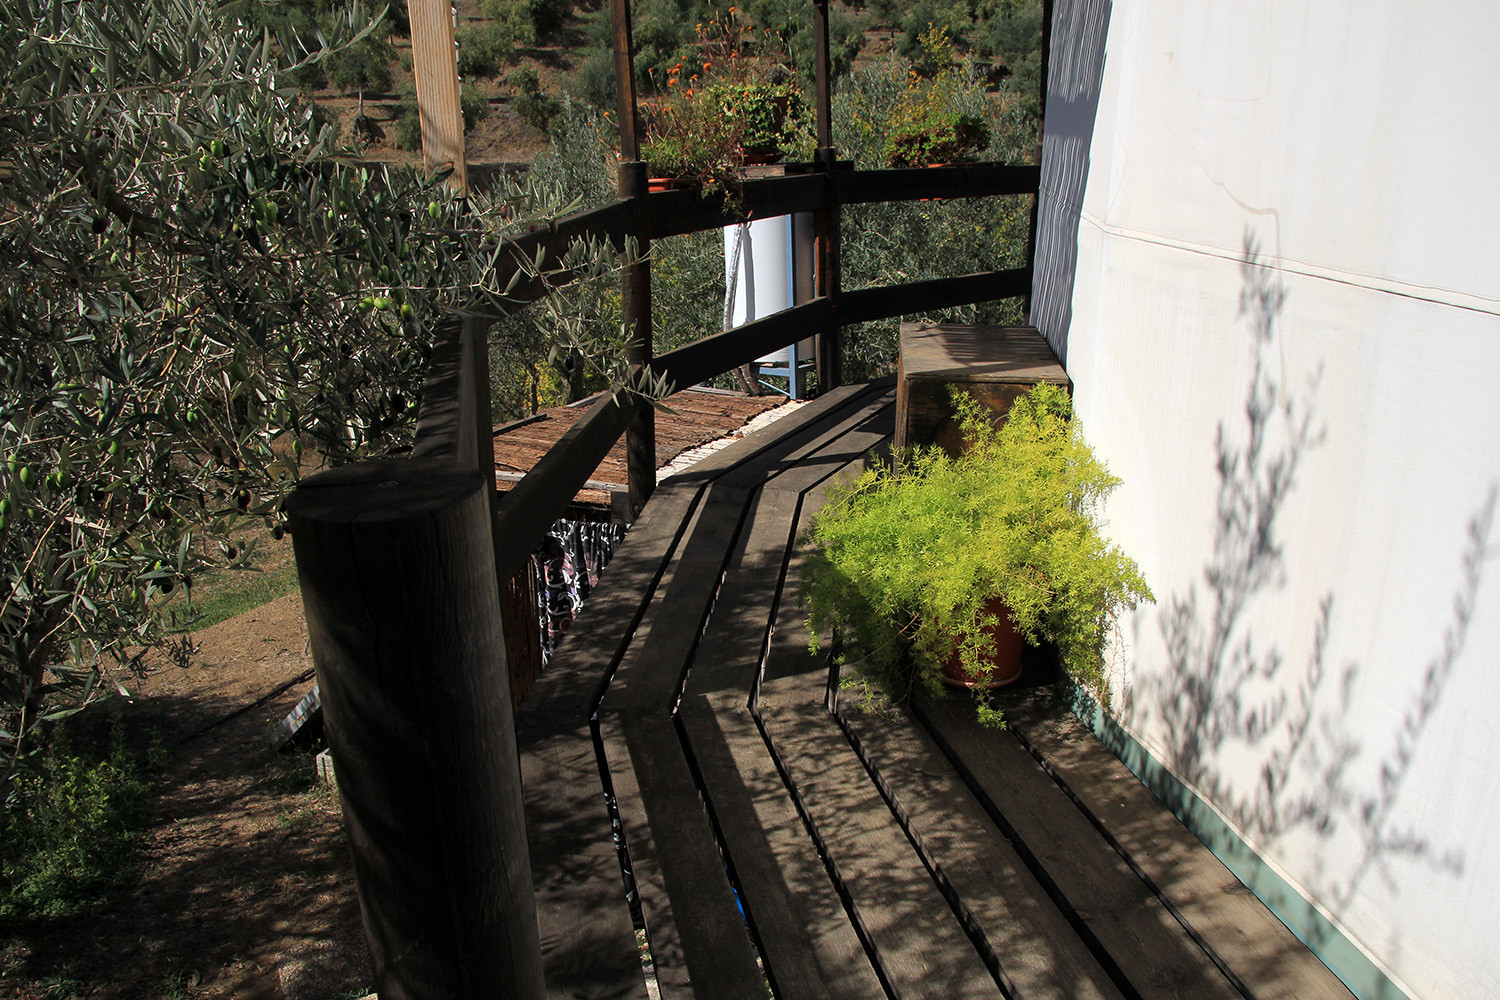 The small wooden path that goes along the yurt